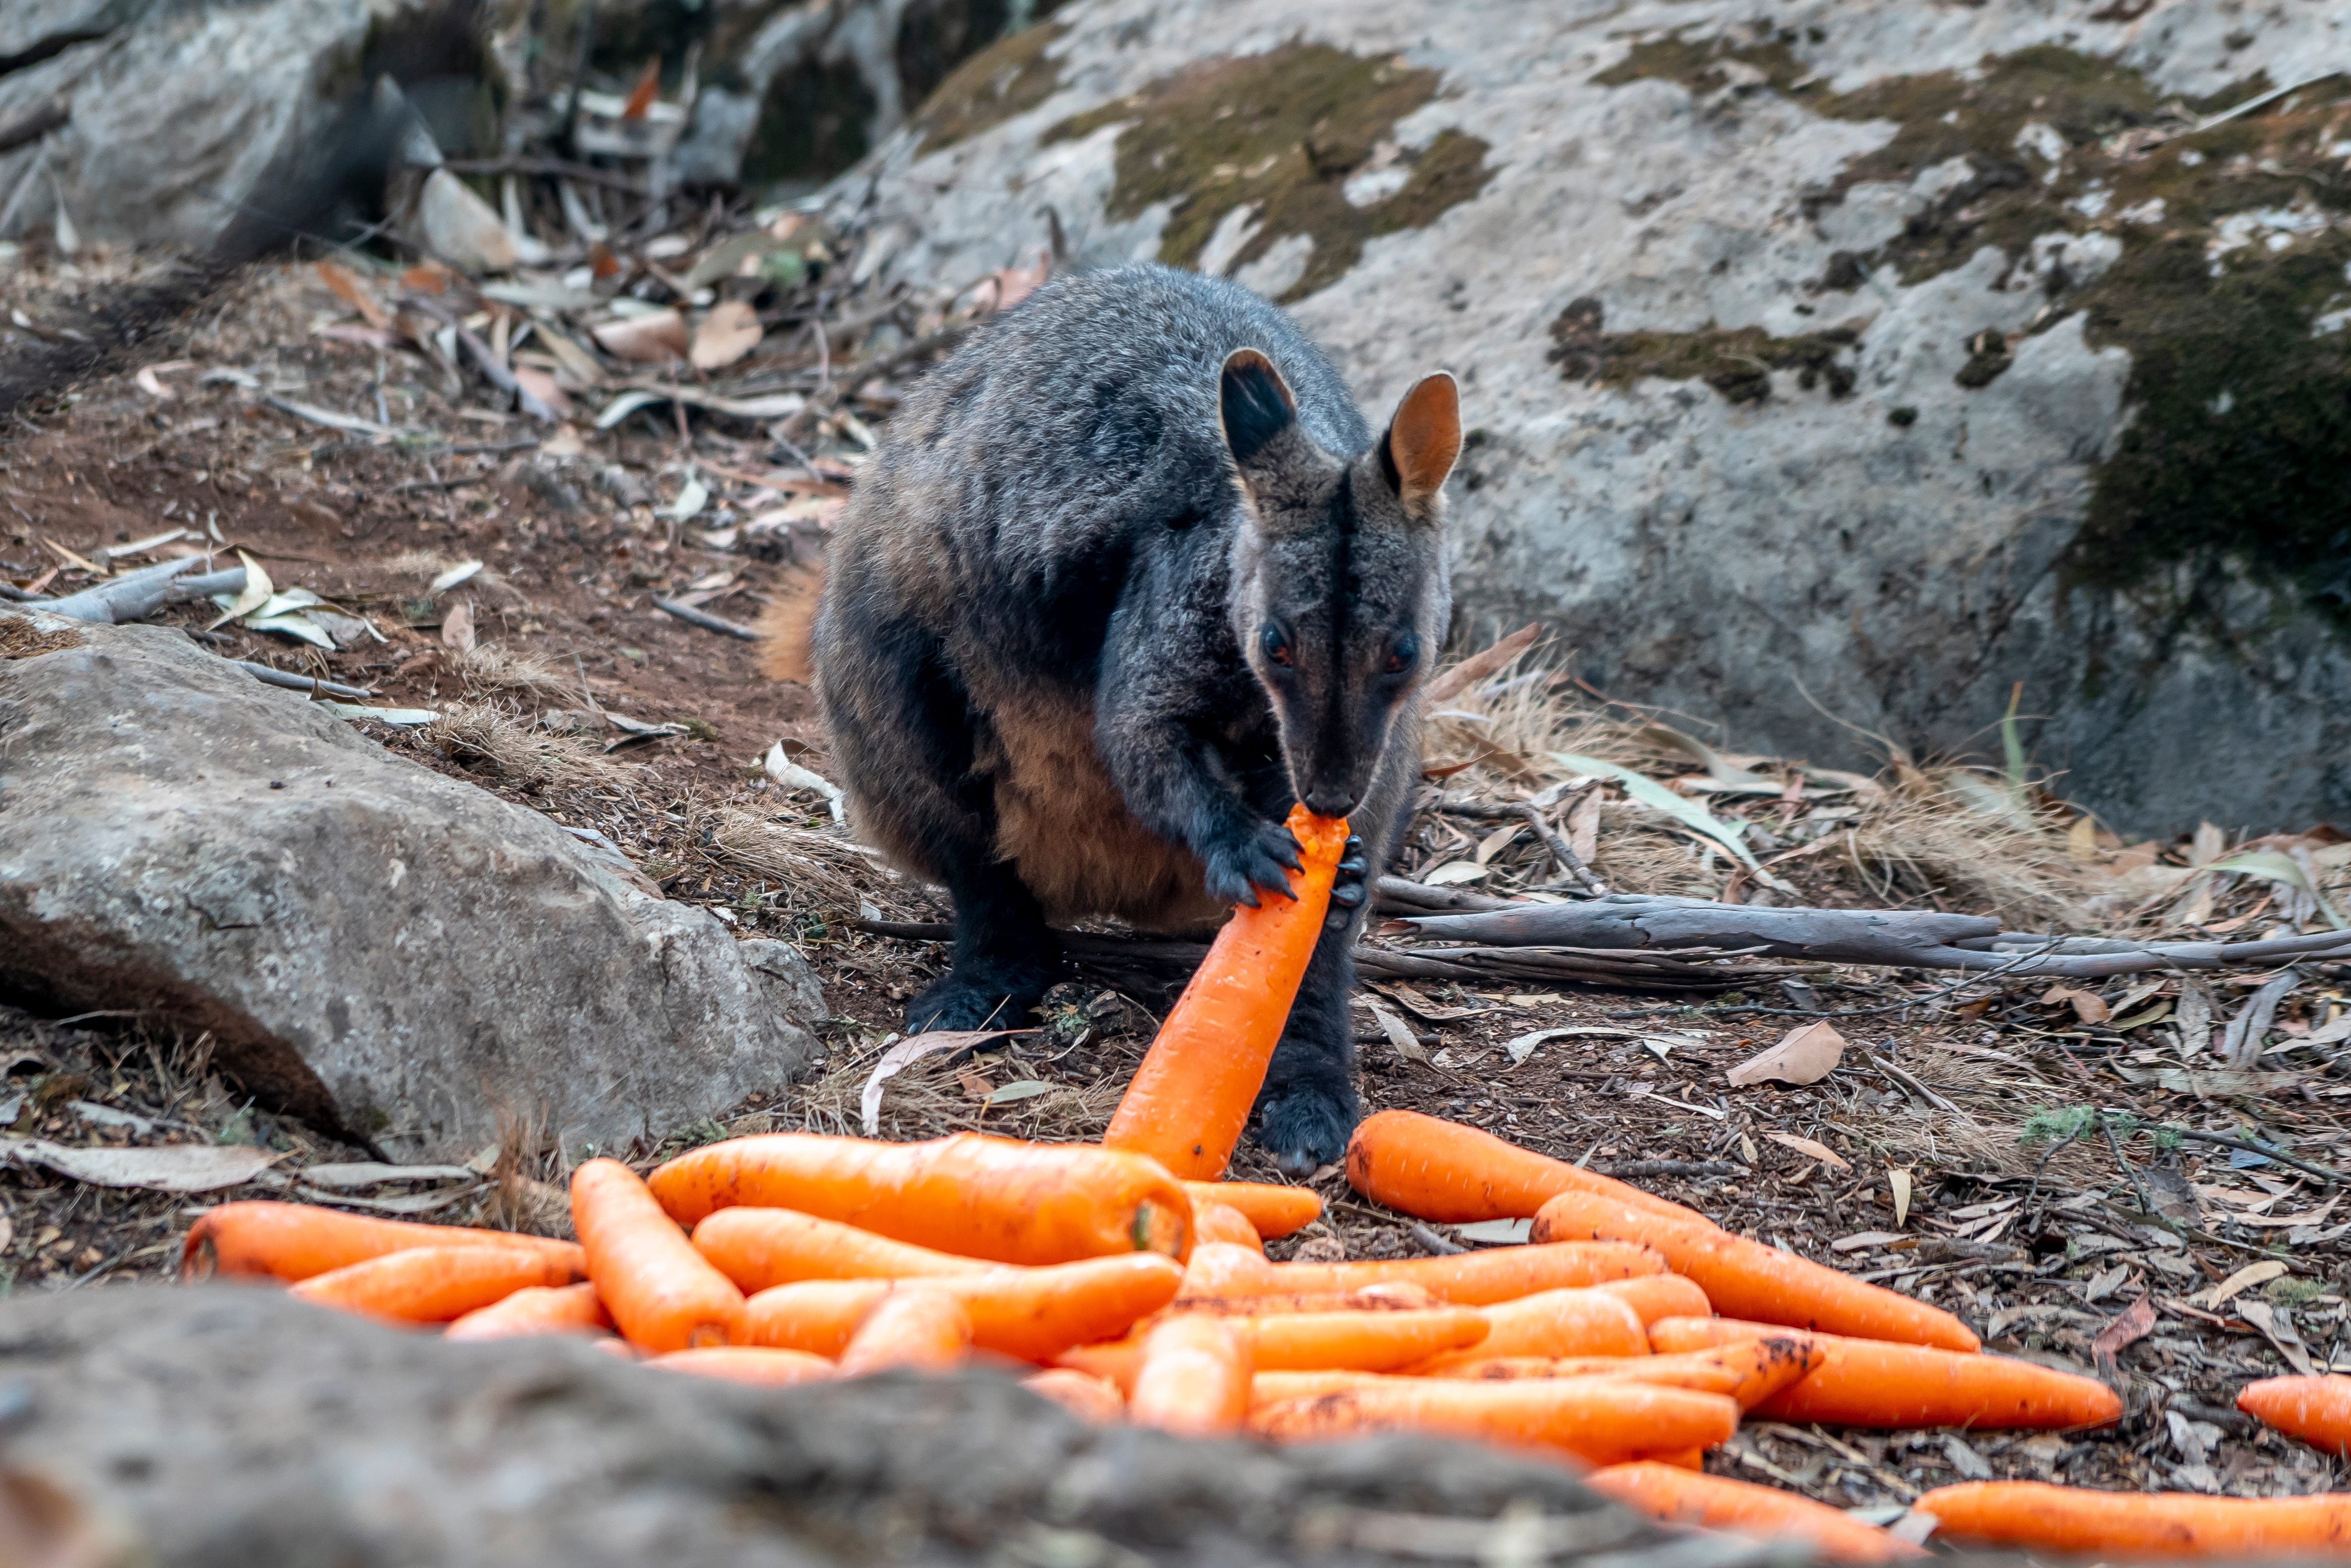 Carrots falling from the sky: Australia drops 4,600 pounds of food, water from helicopters to feed hungry wallabies